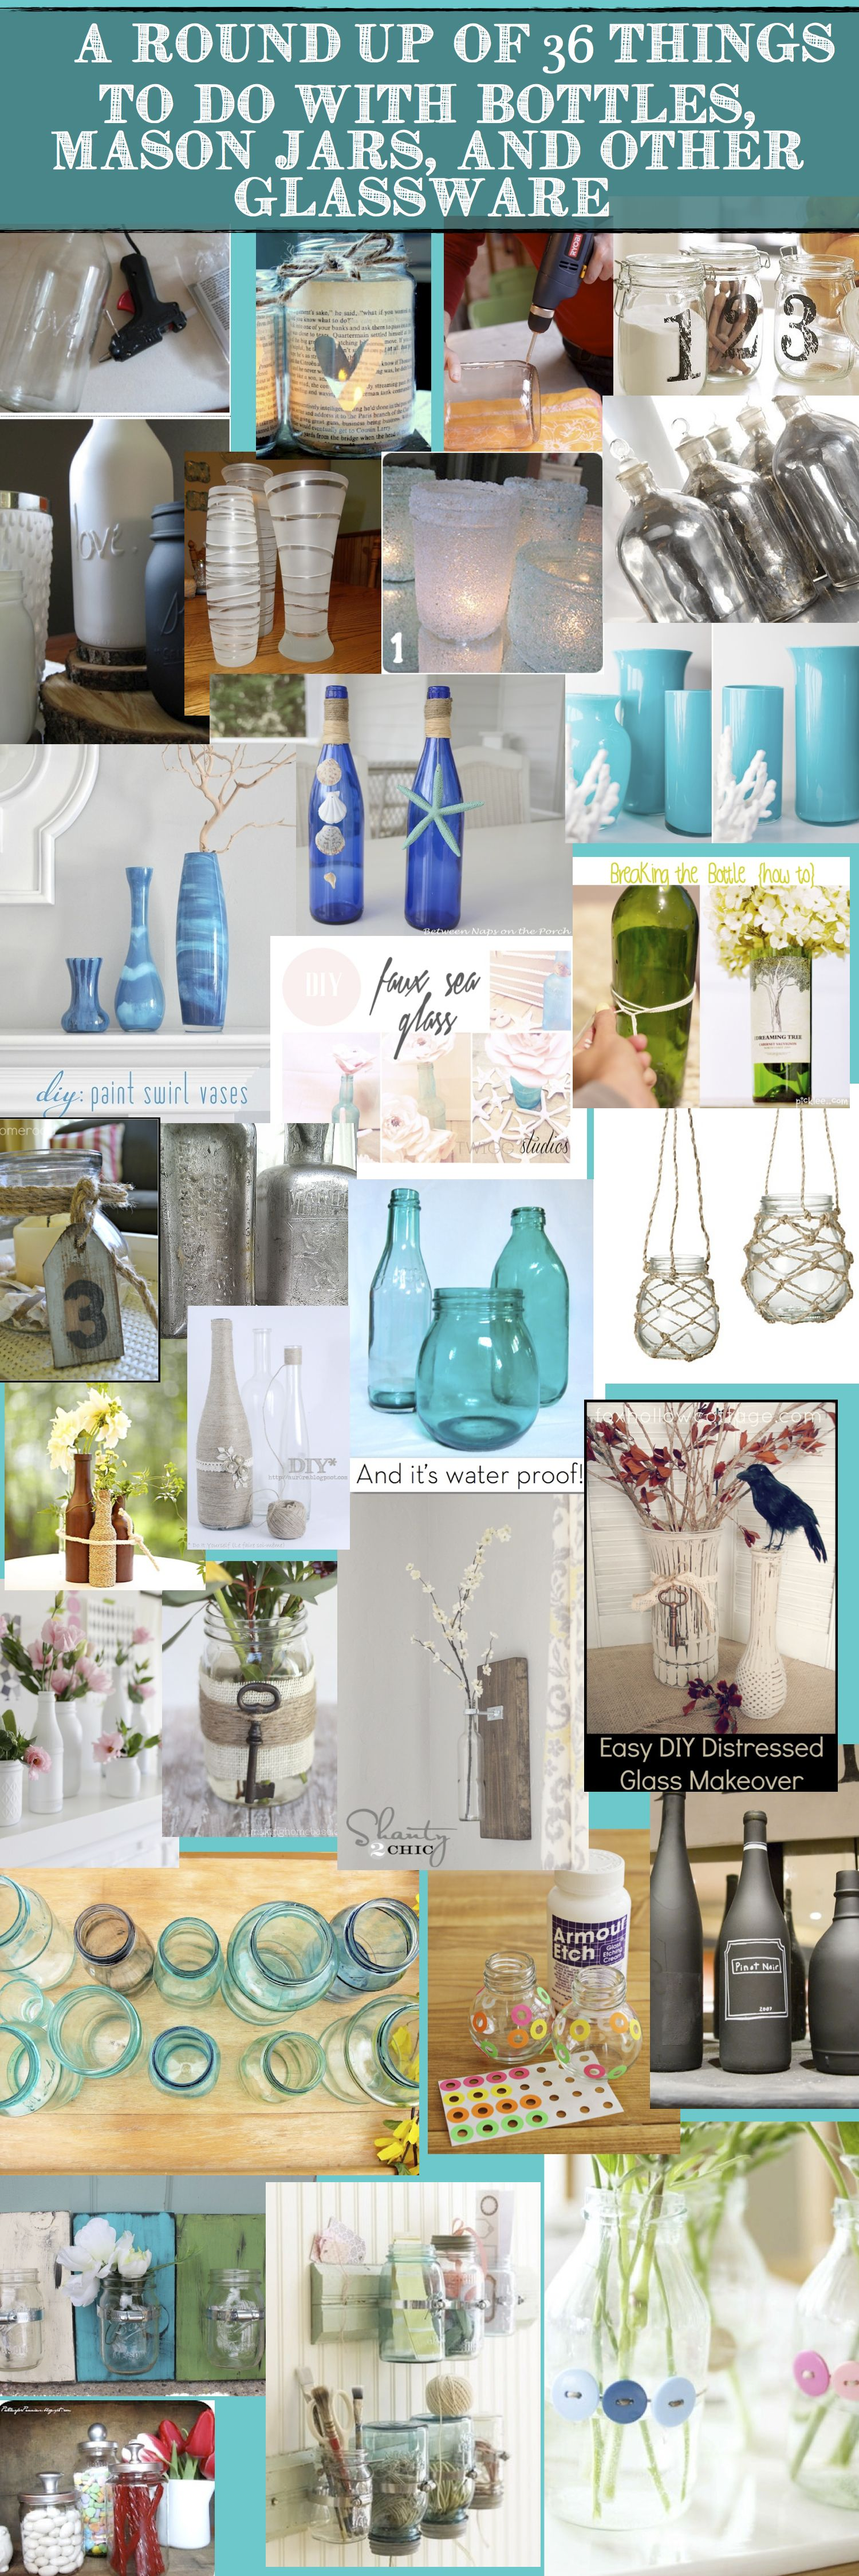 Round up of awesome ways to use bottles mason jars and other